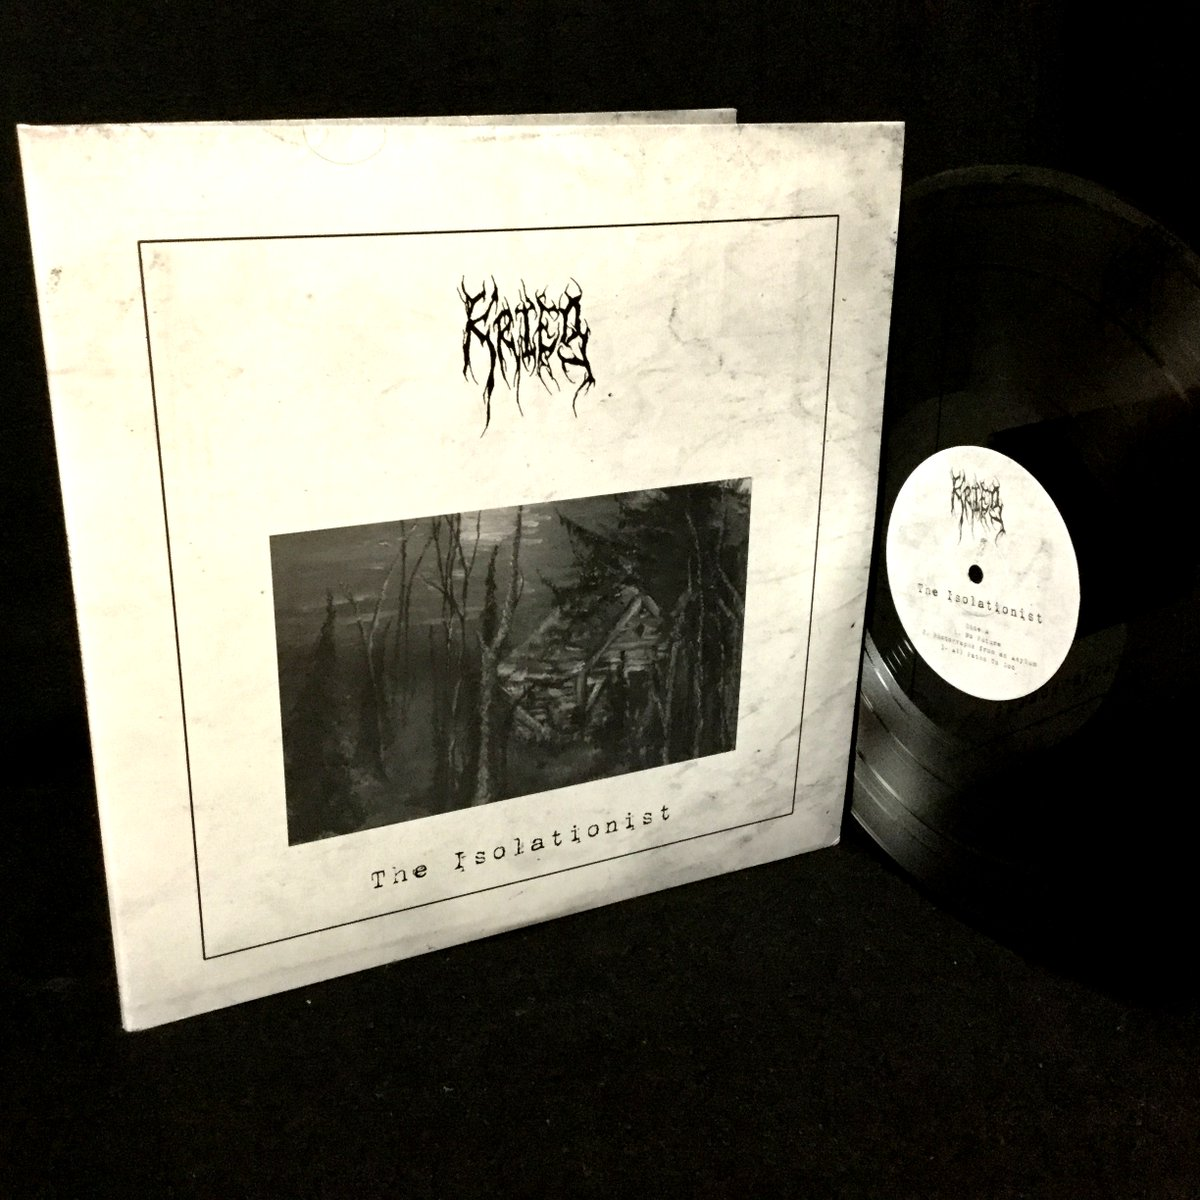 10th ANNIVERSARY!!!!!!!!!!!!!!!!!!!!!!!!!!!!!!! KRIEG / The Isolationist (LP) [October 25th, 2010(US)discogs / October 26th, 2010 MA] https://t.co/juIlNUWpgj